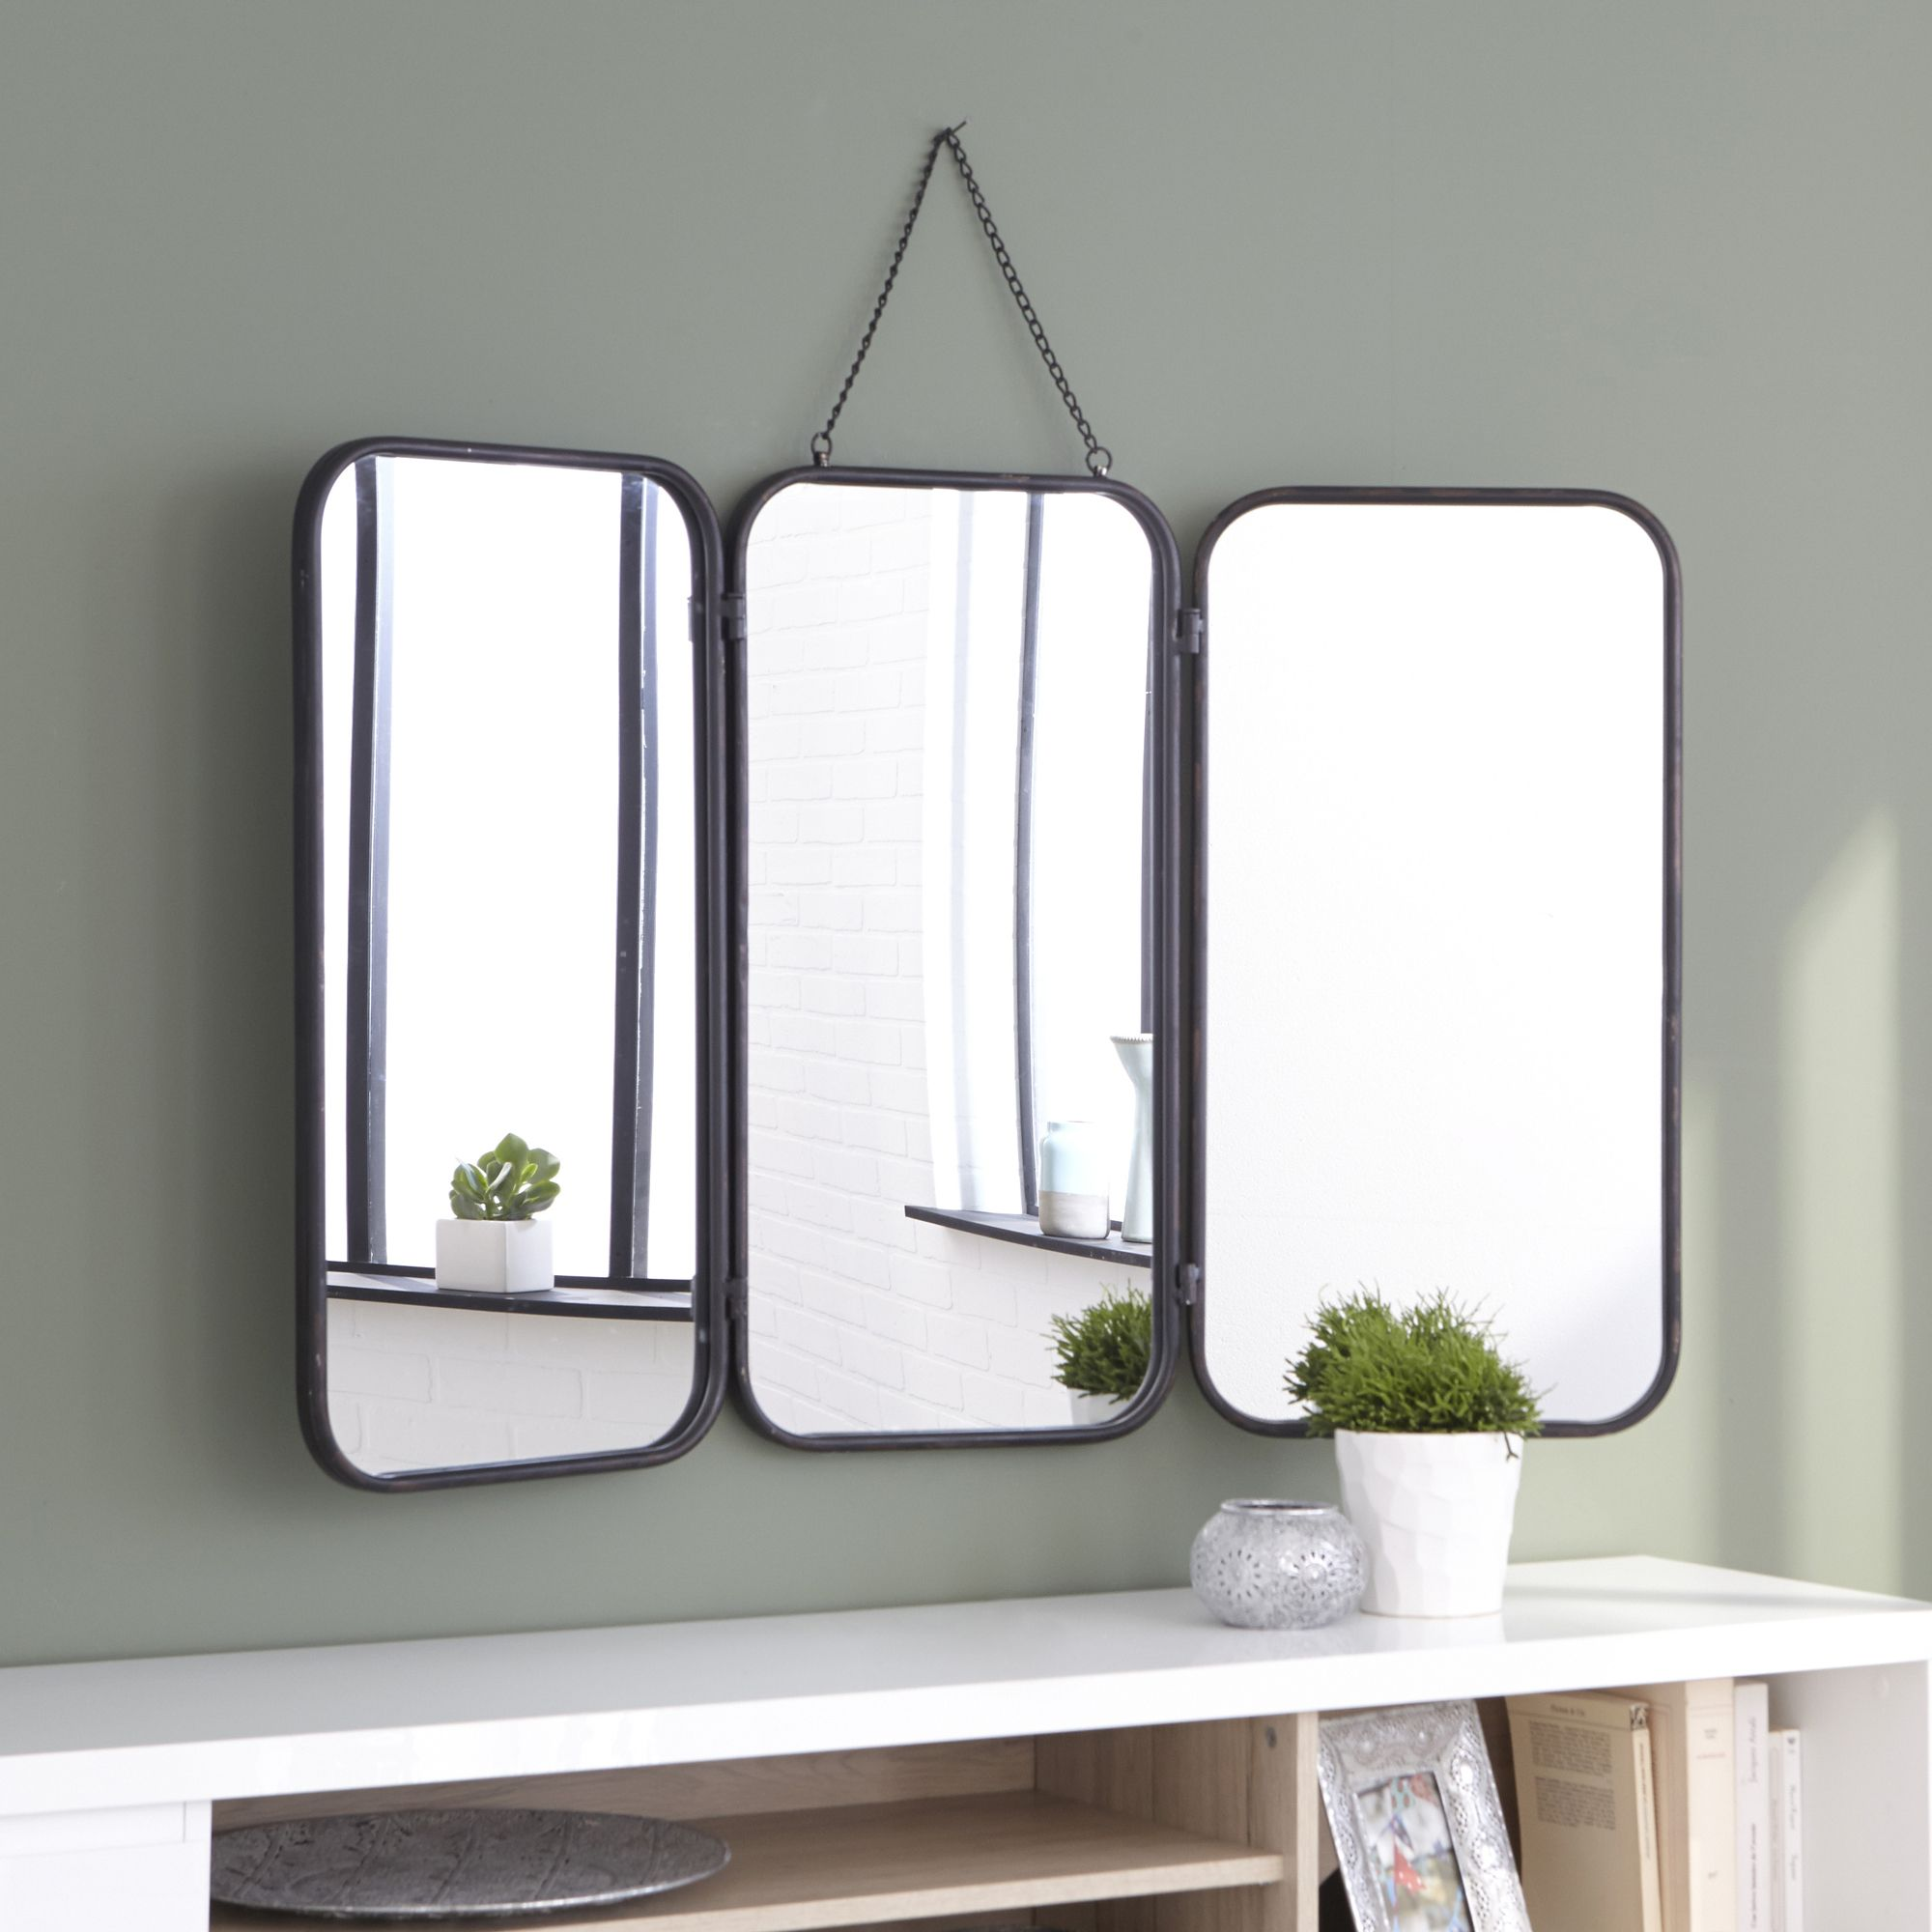 todd miroir triptyque de barbier aux bords en m tal noir d coration d co maison alin a. Black Bedroom Furniture Sets. Home Design Ideas